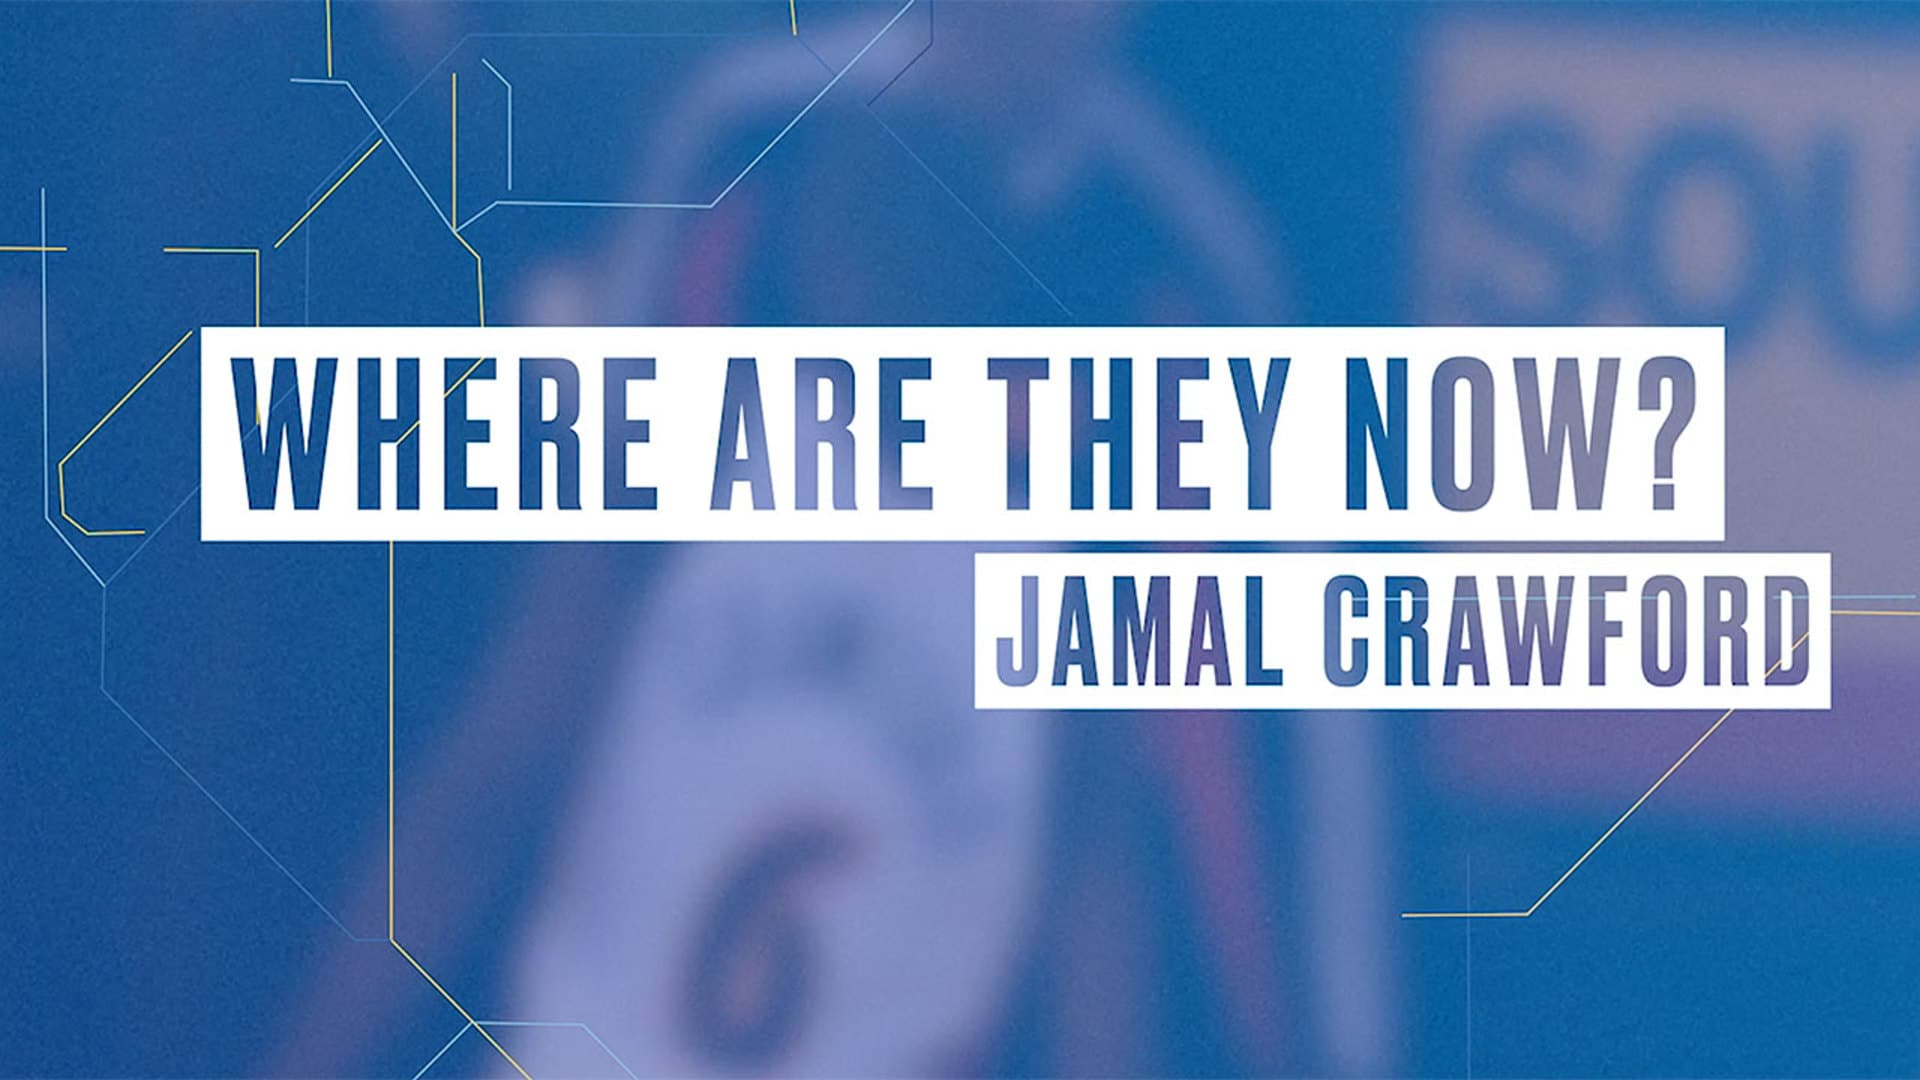 Where Are They Now featuring Jamal Crawford